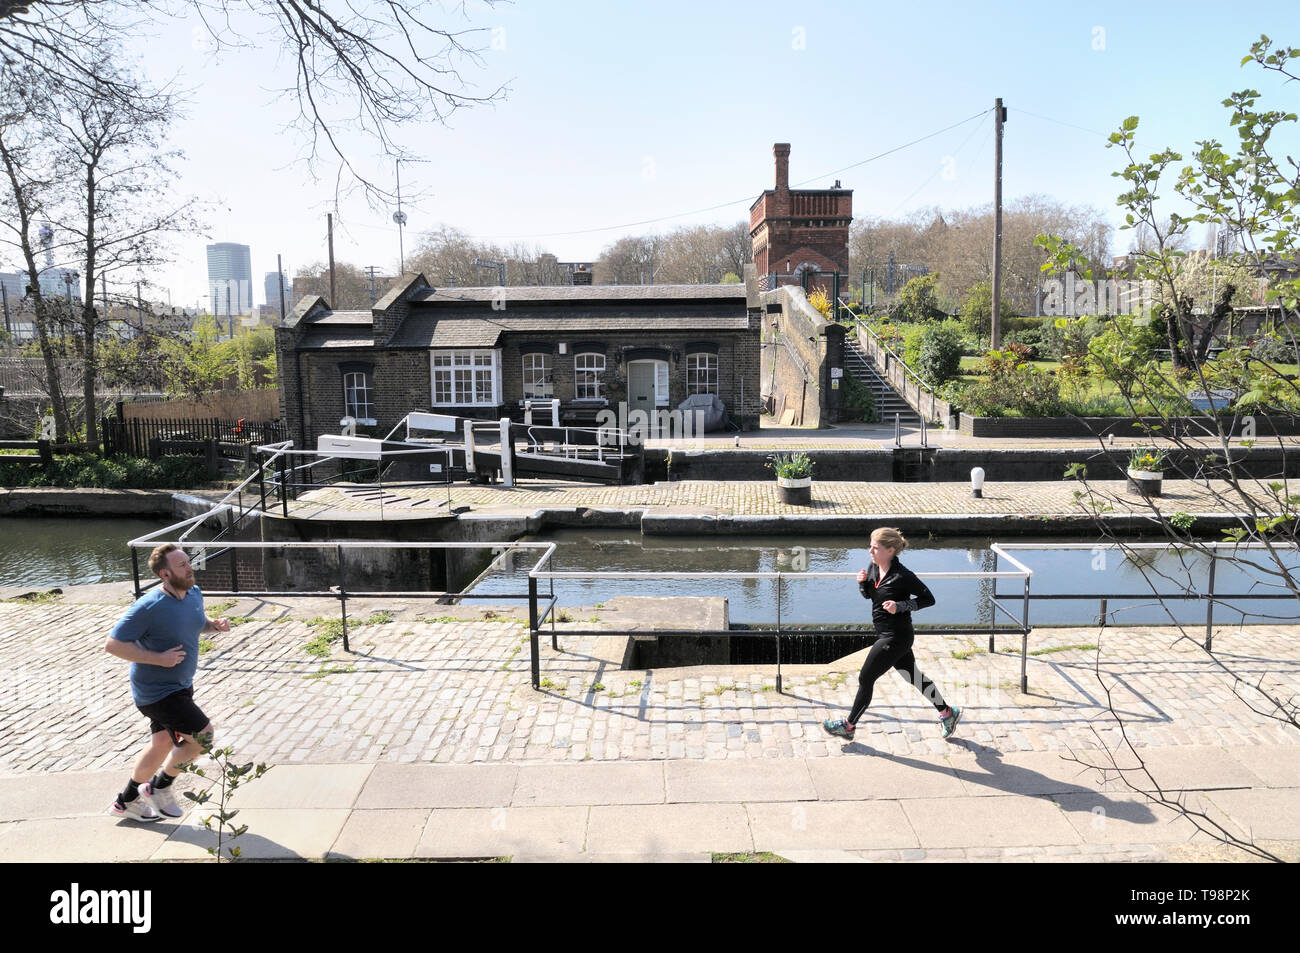 People jogging by St Pancras Lock with Lock Keepers Cottage and Waterpoint in the background, Regent's Canal, Grand Union Canal, London, England, UK - Stock Image